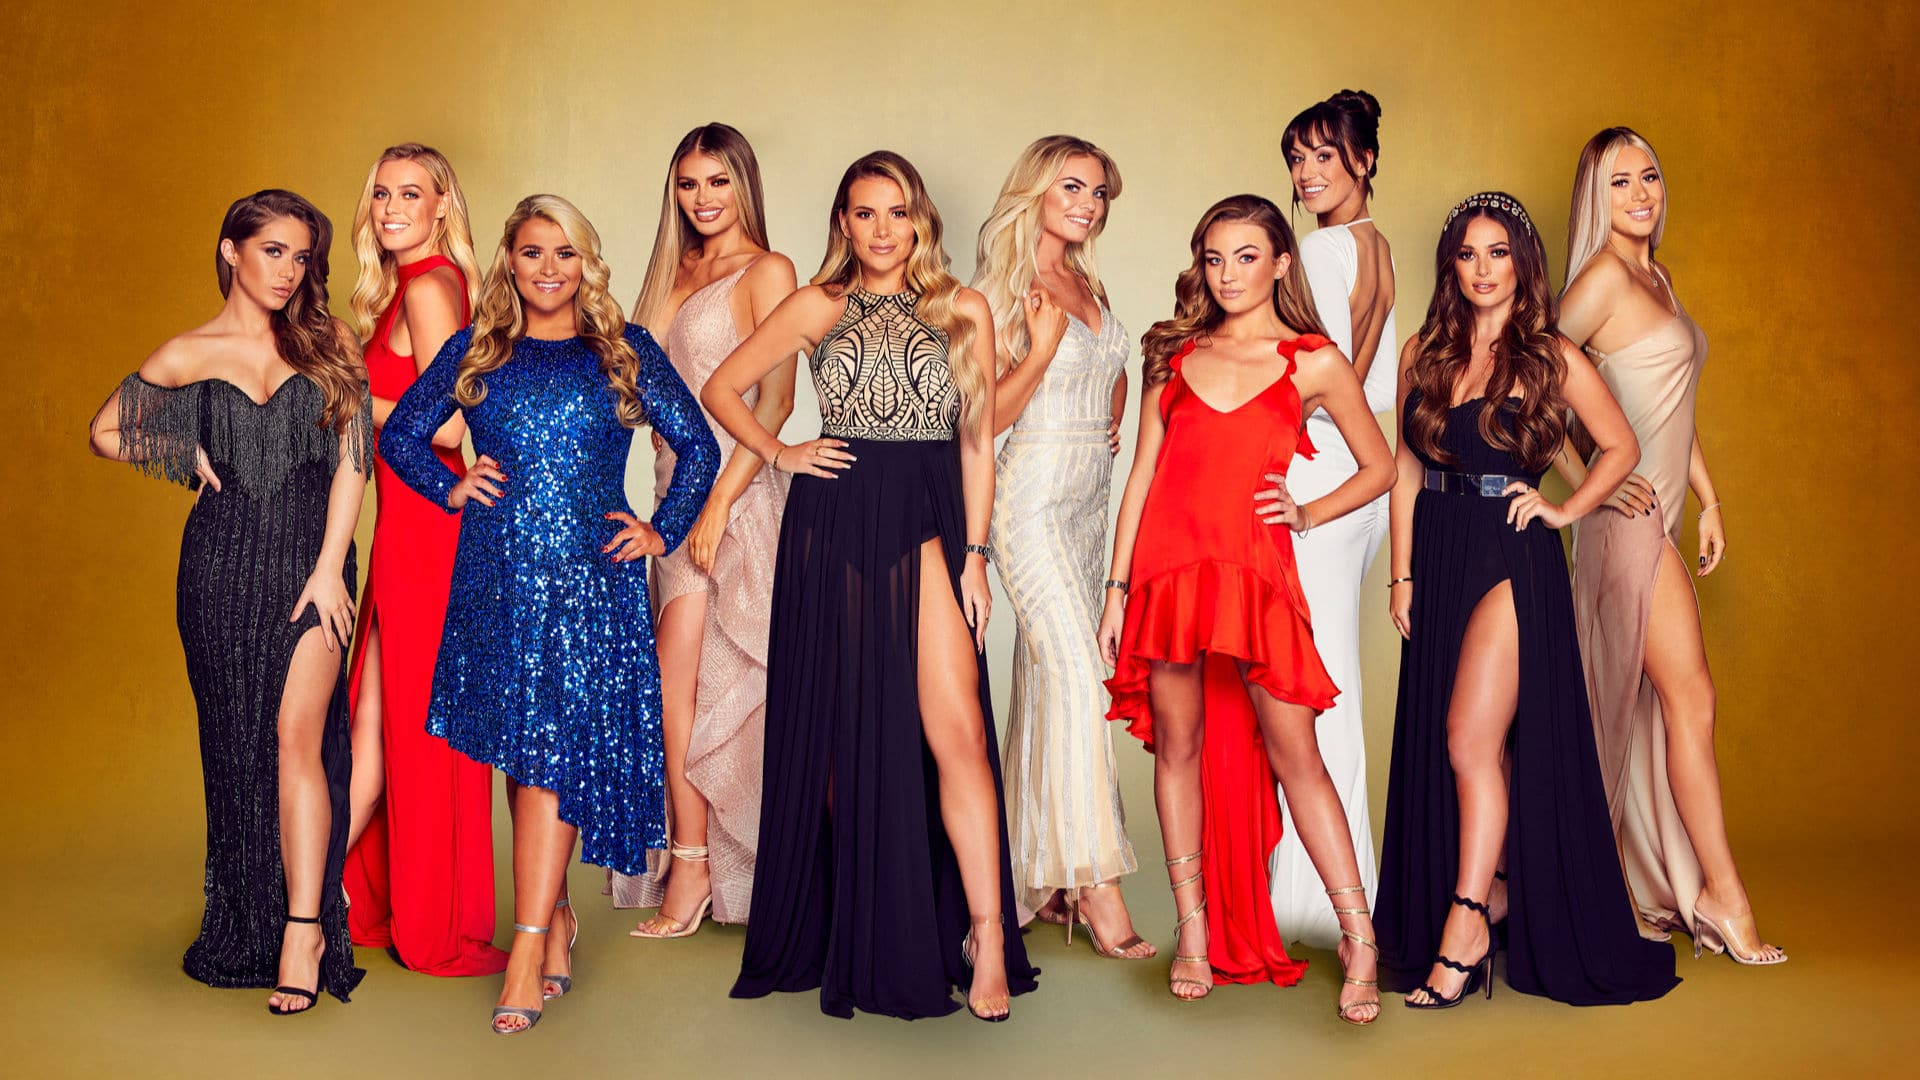 The Only Way Is Essex 2021 start date as Series 28 arrives on ITVBe |  Reality TV | TellyMix